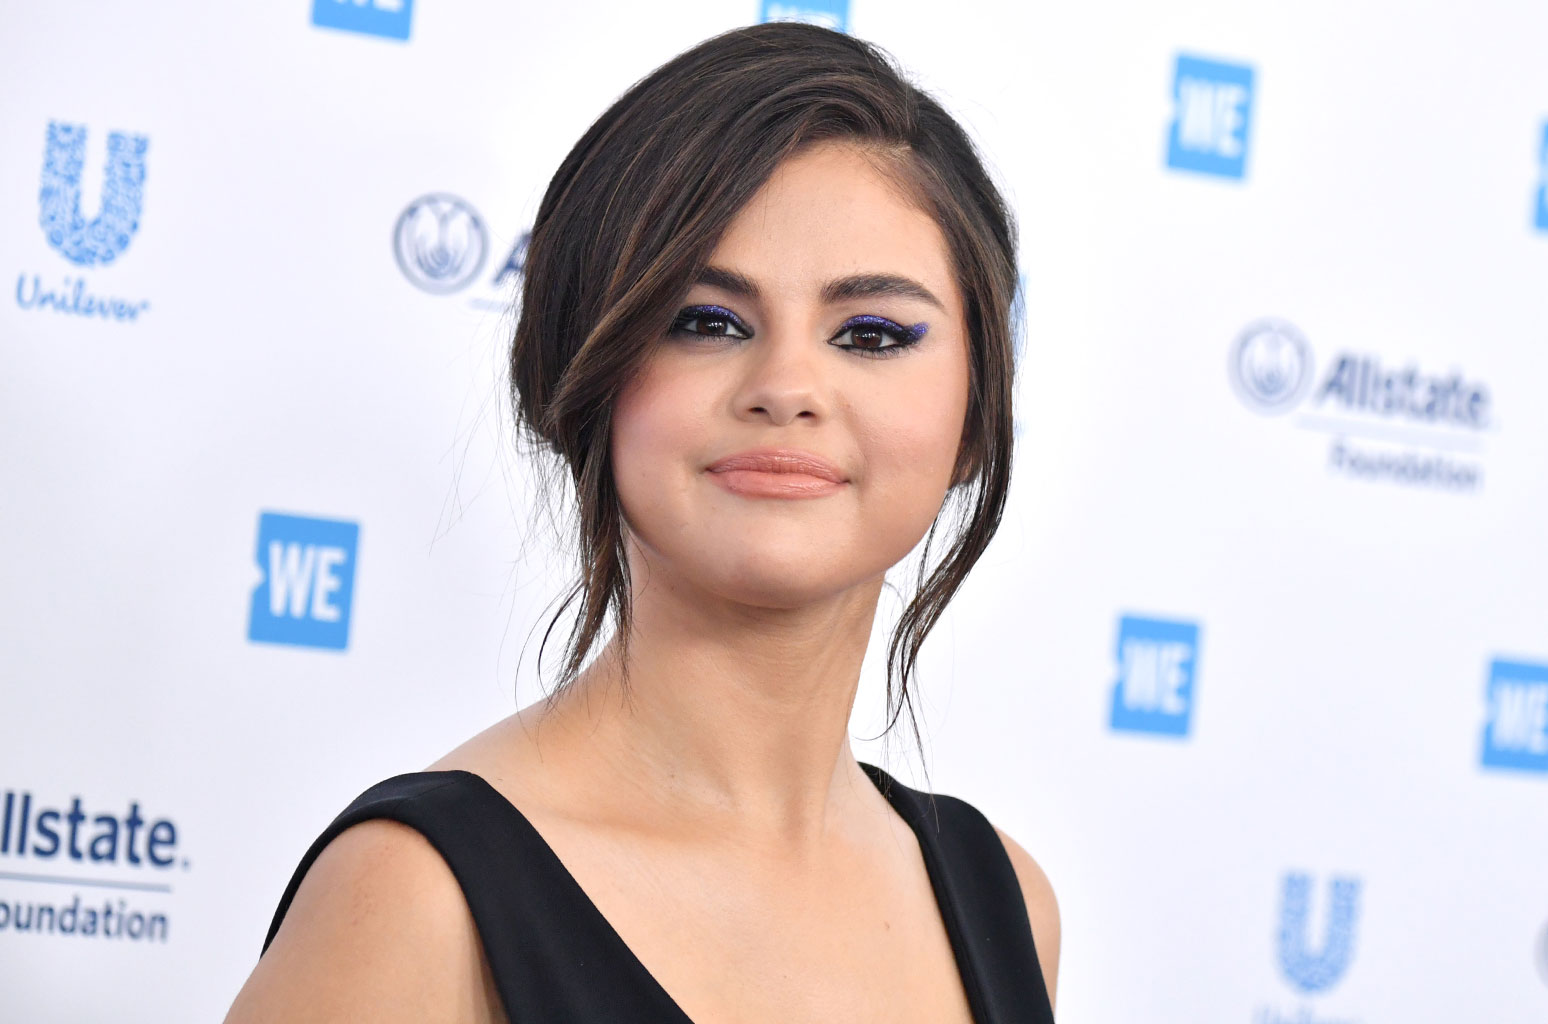 Selena Gomez's Social Media Posts Estimated To Be Worth $550,000 Apiece